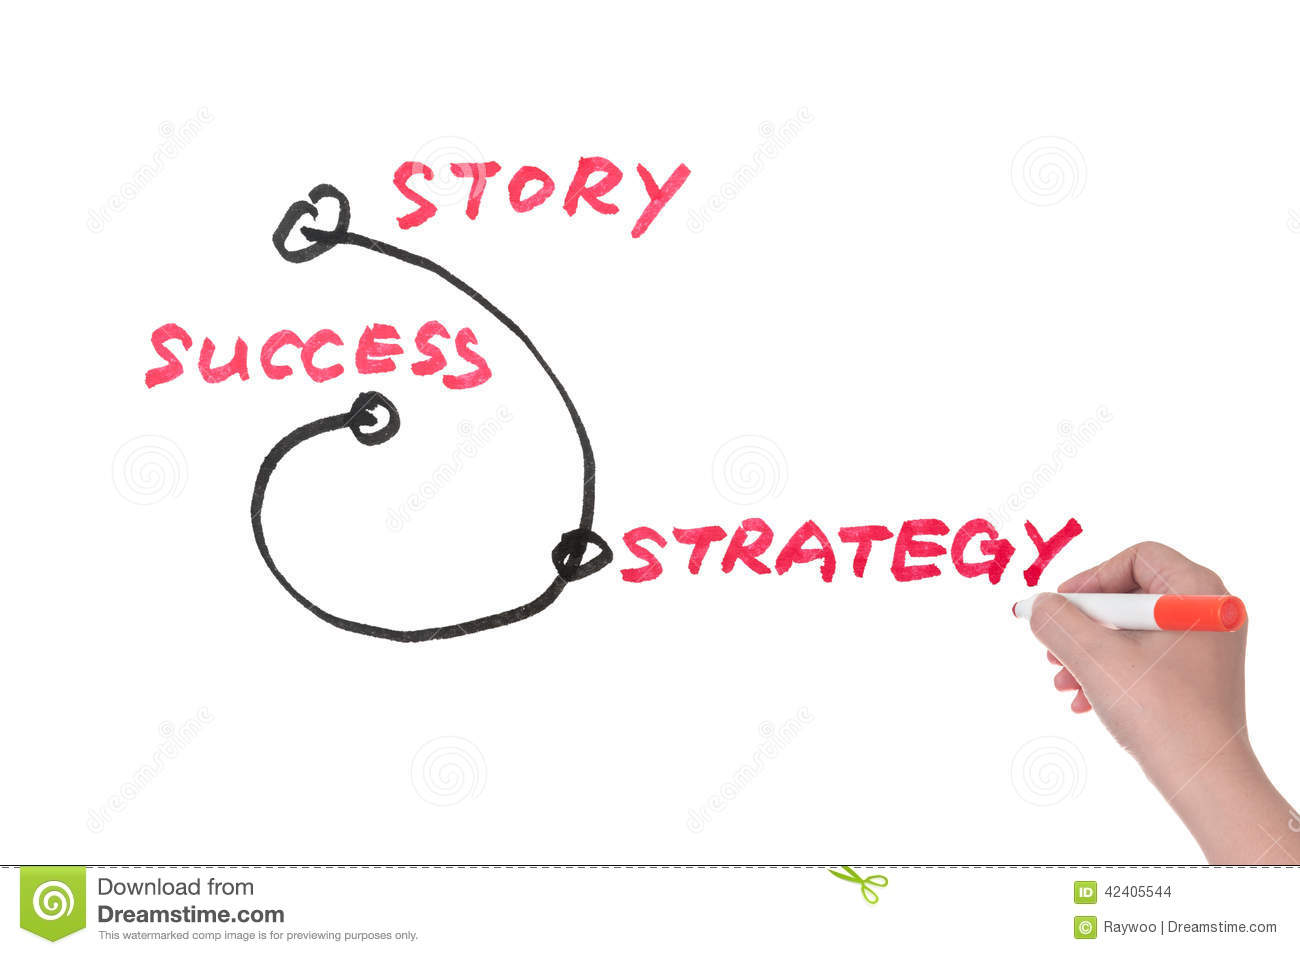 From story to success